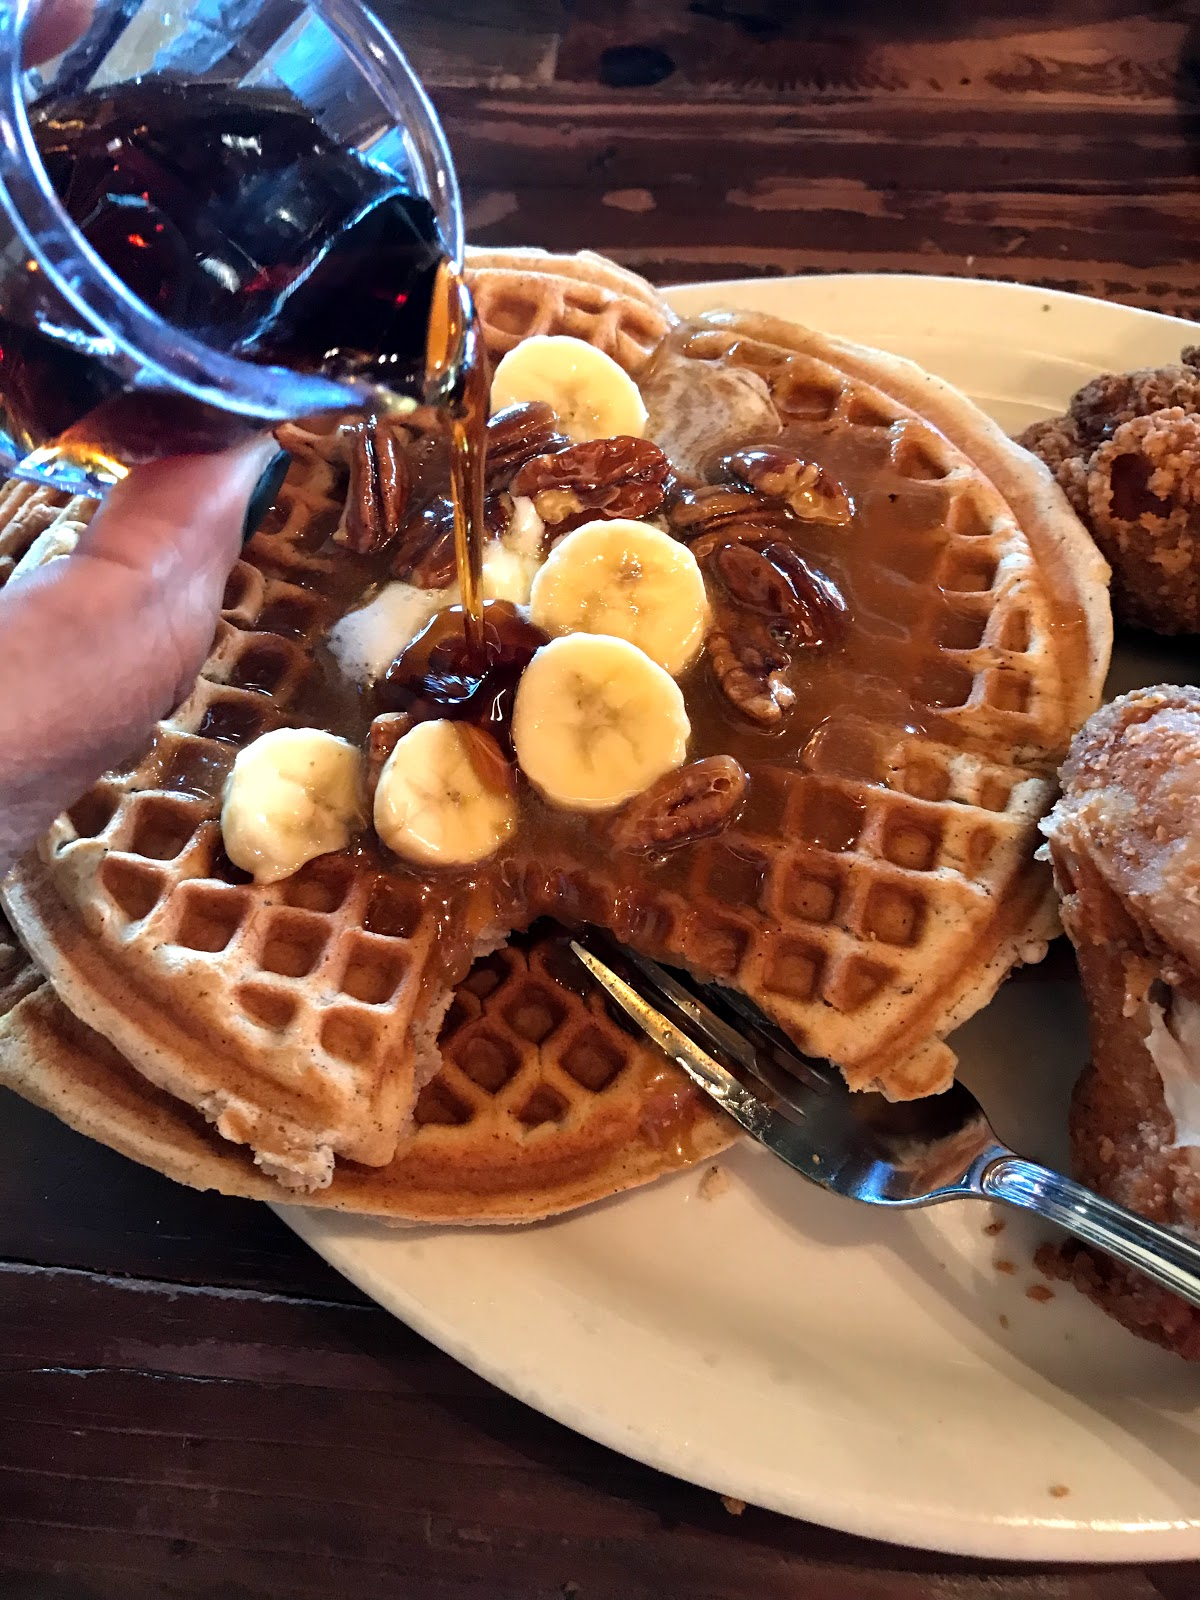 Image: Waffles and syrup at LoLo's Chicken and Waffles